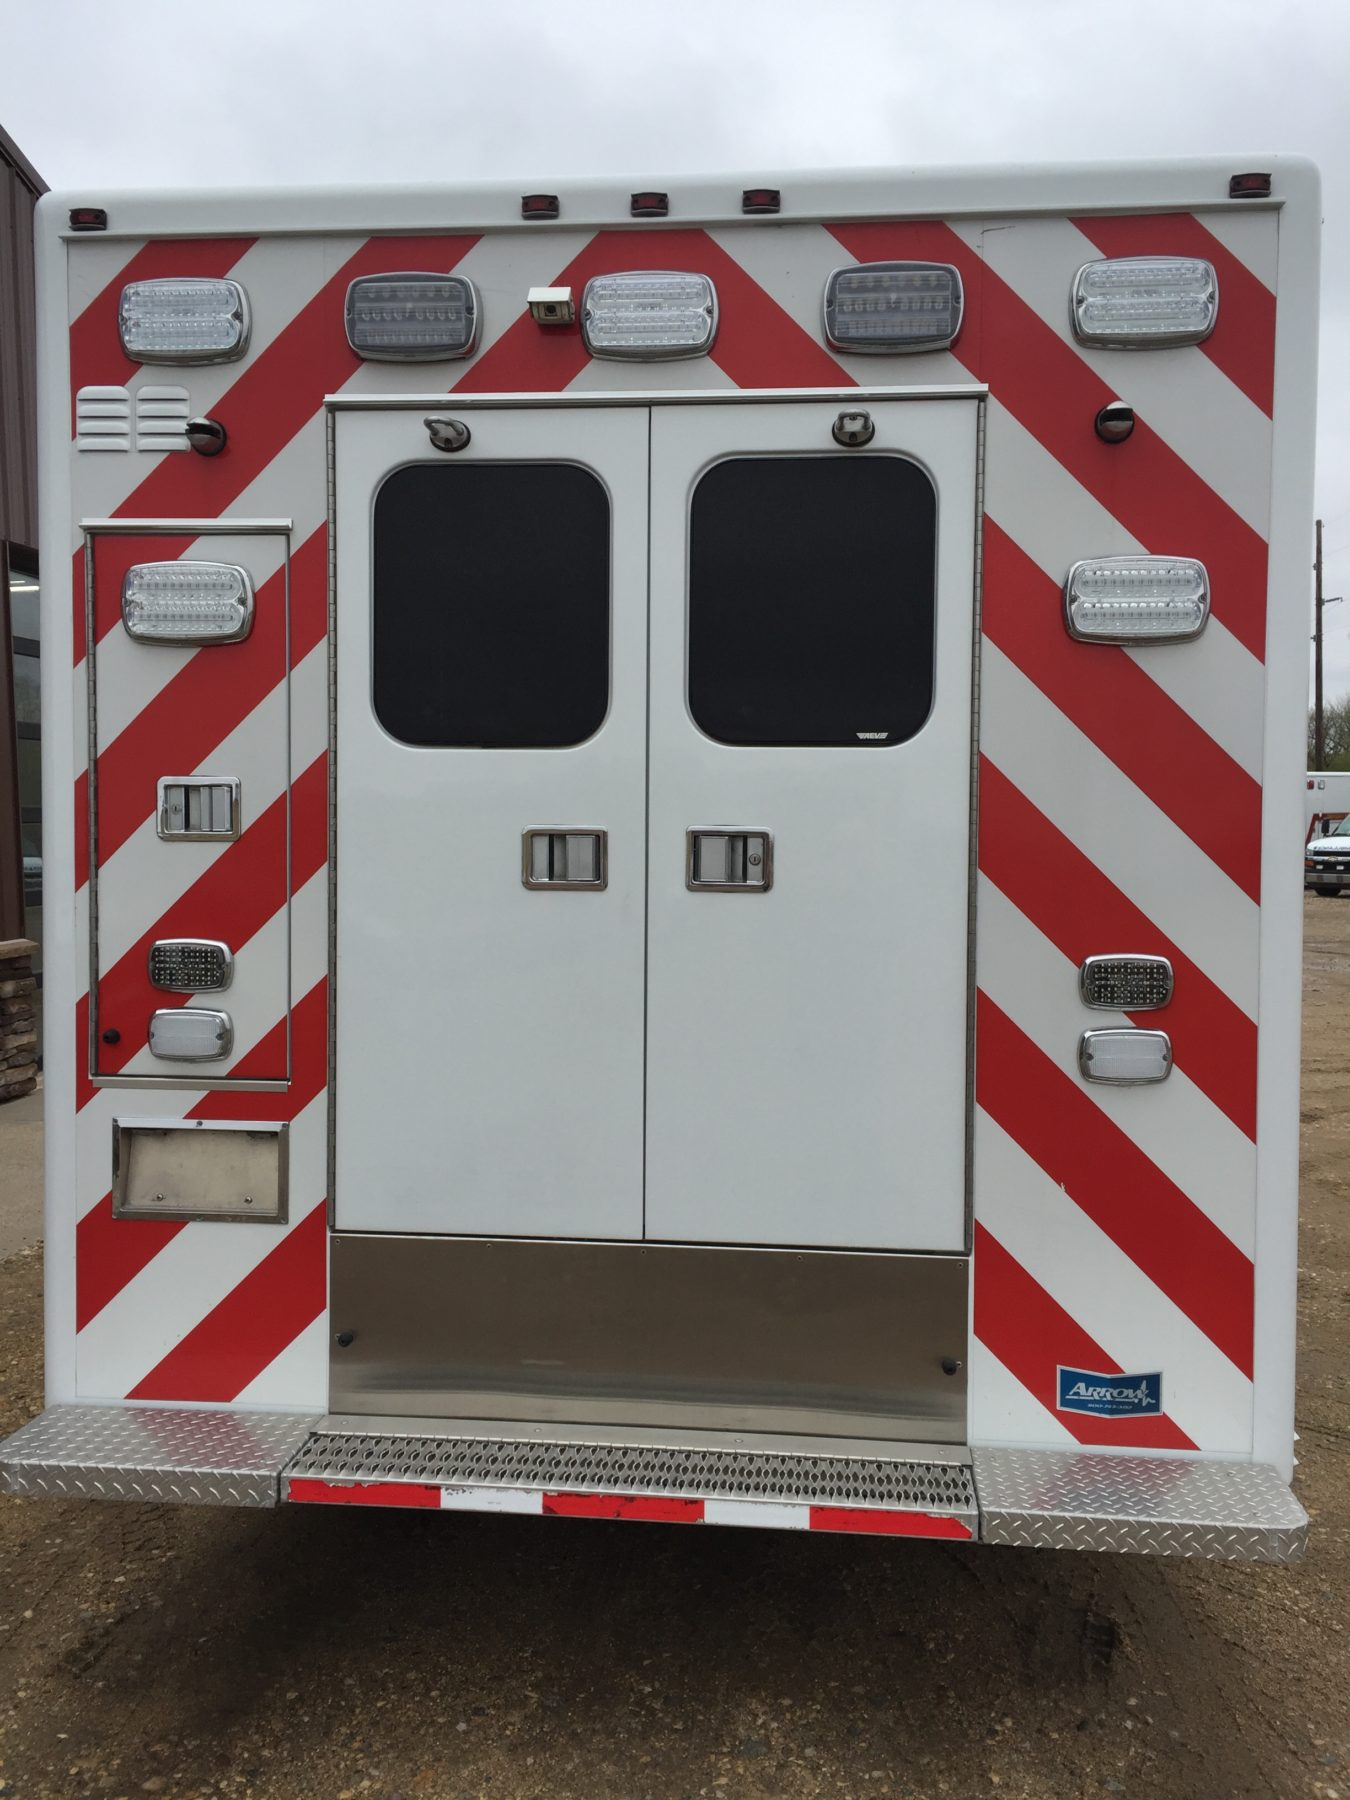 2015 Dodge 4500 4x4 Heavy Duty Ambulance For Sale – Picture 8